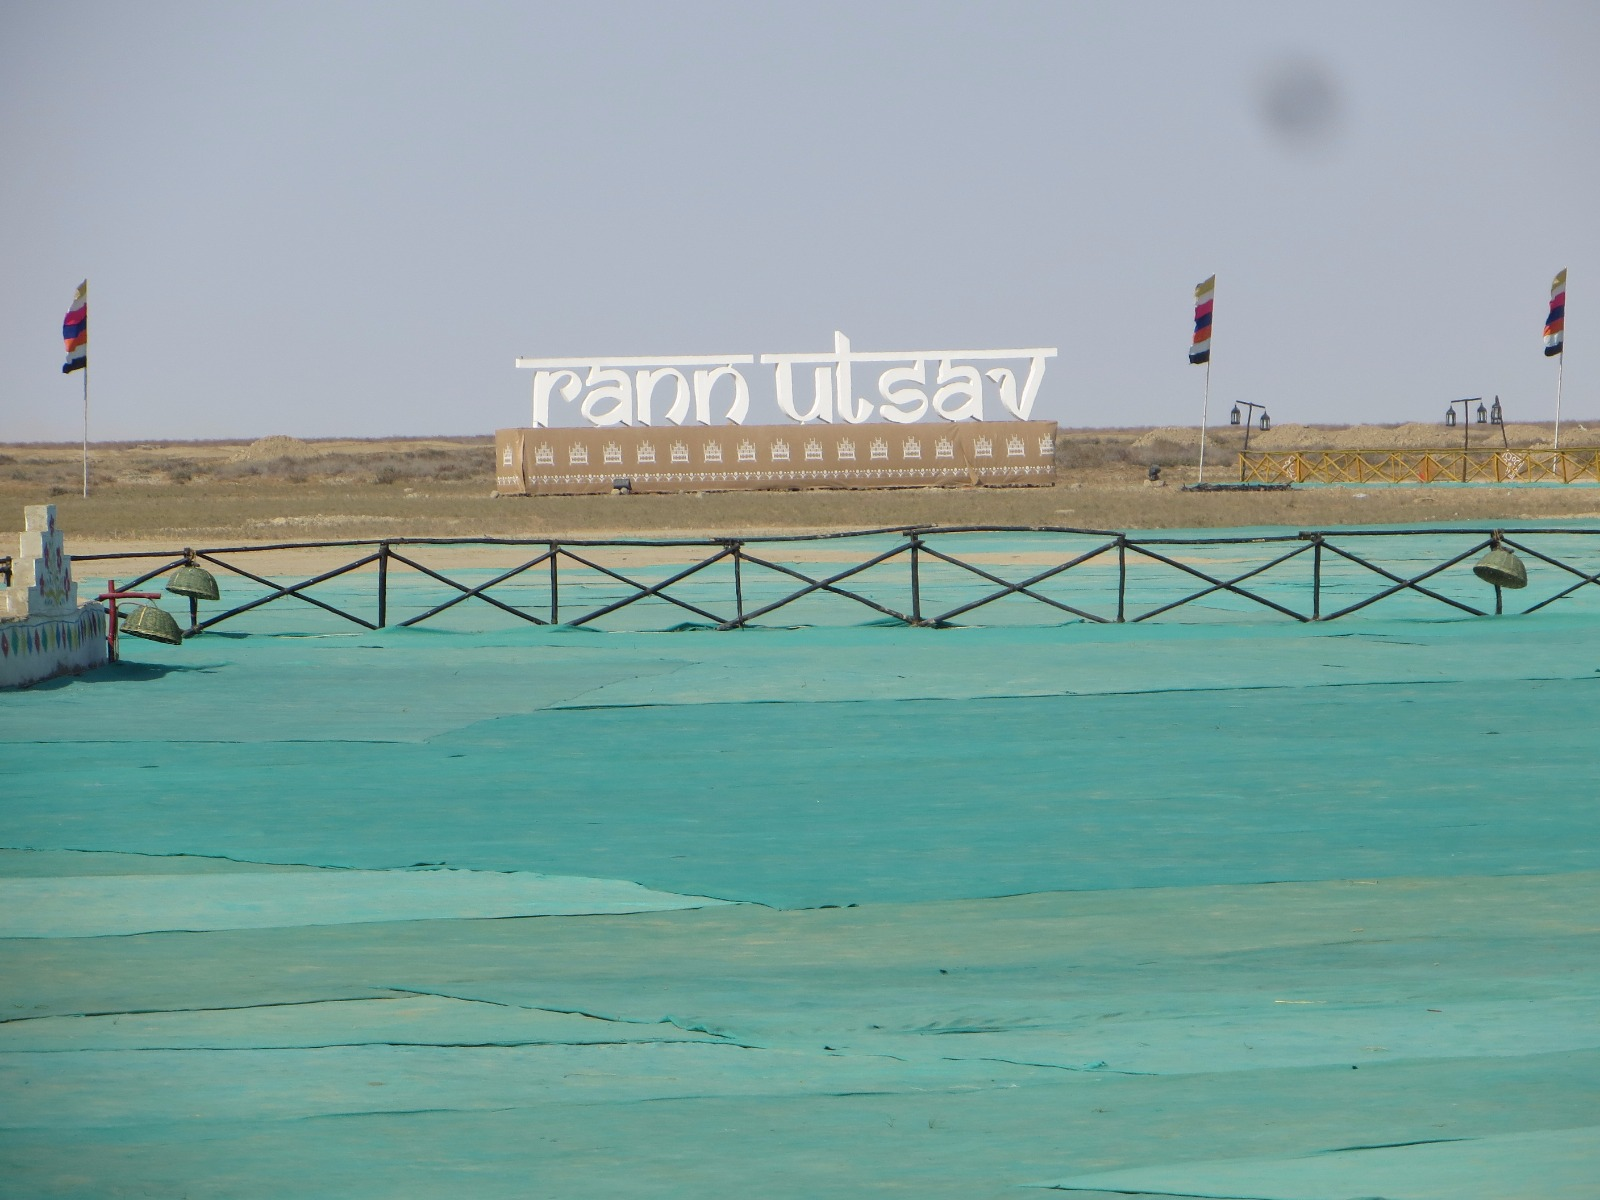 Venue of Rann Utsav